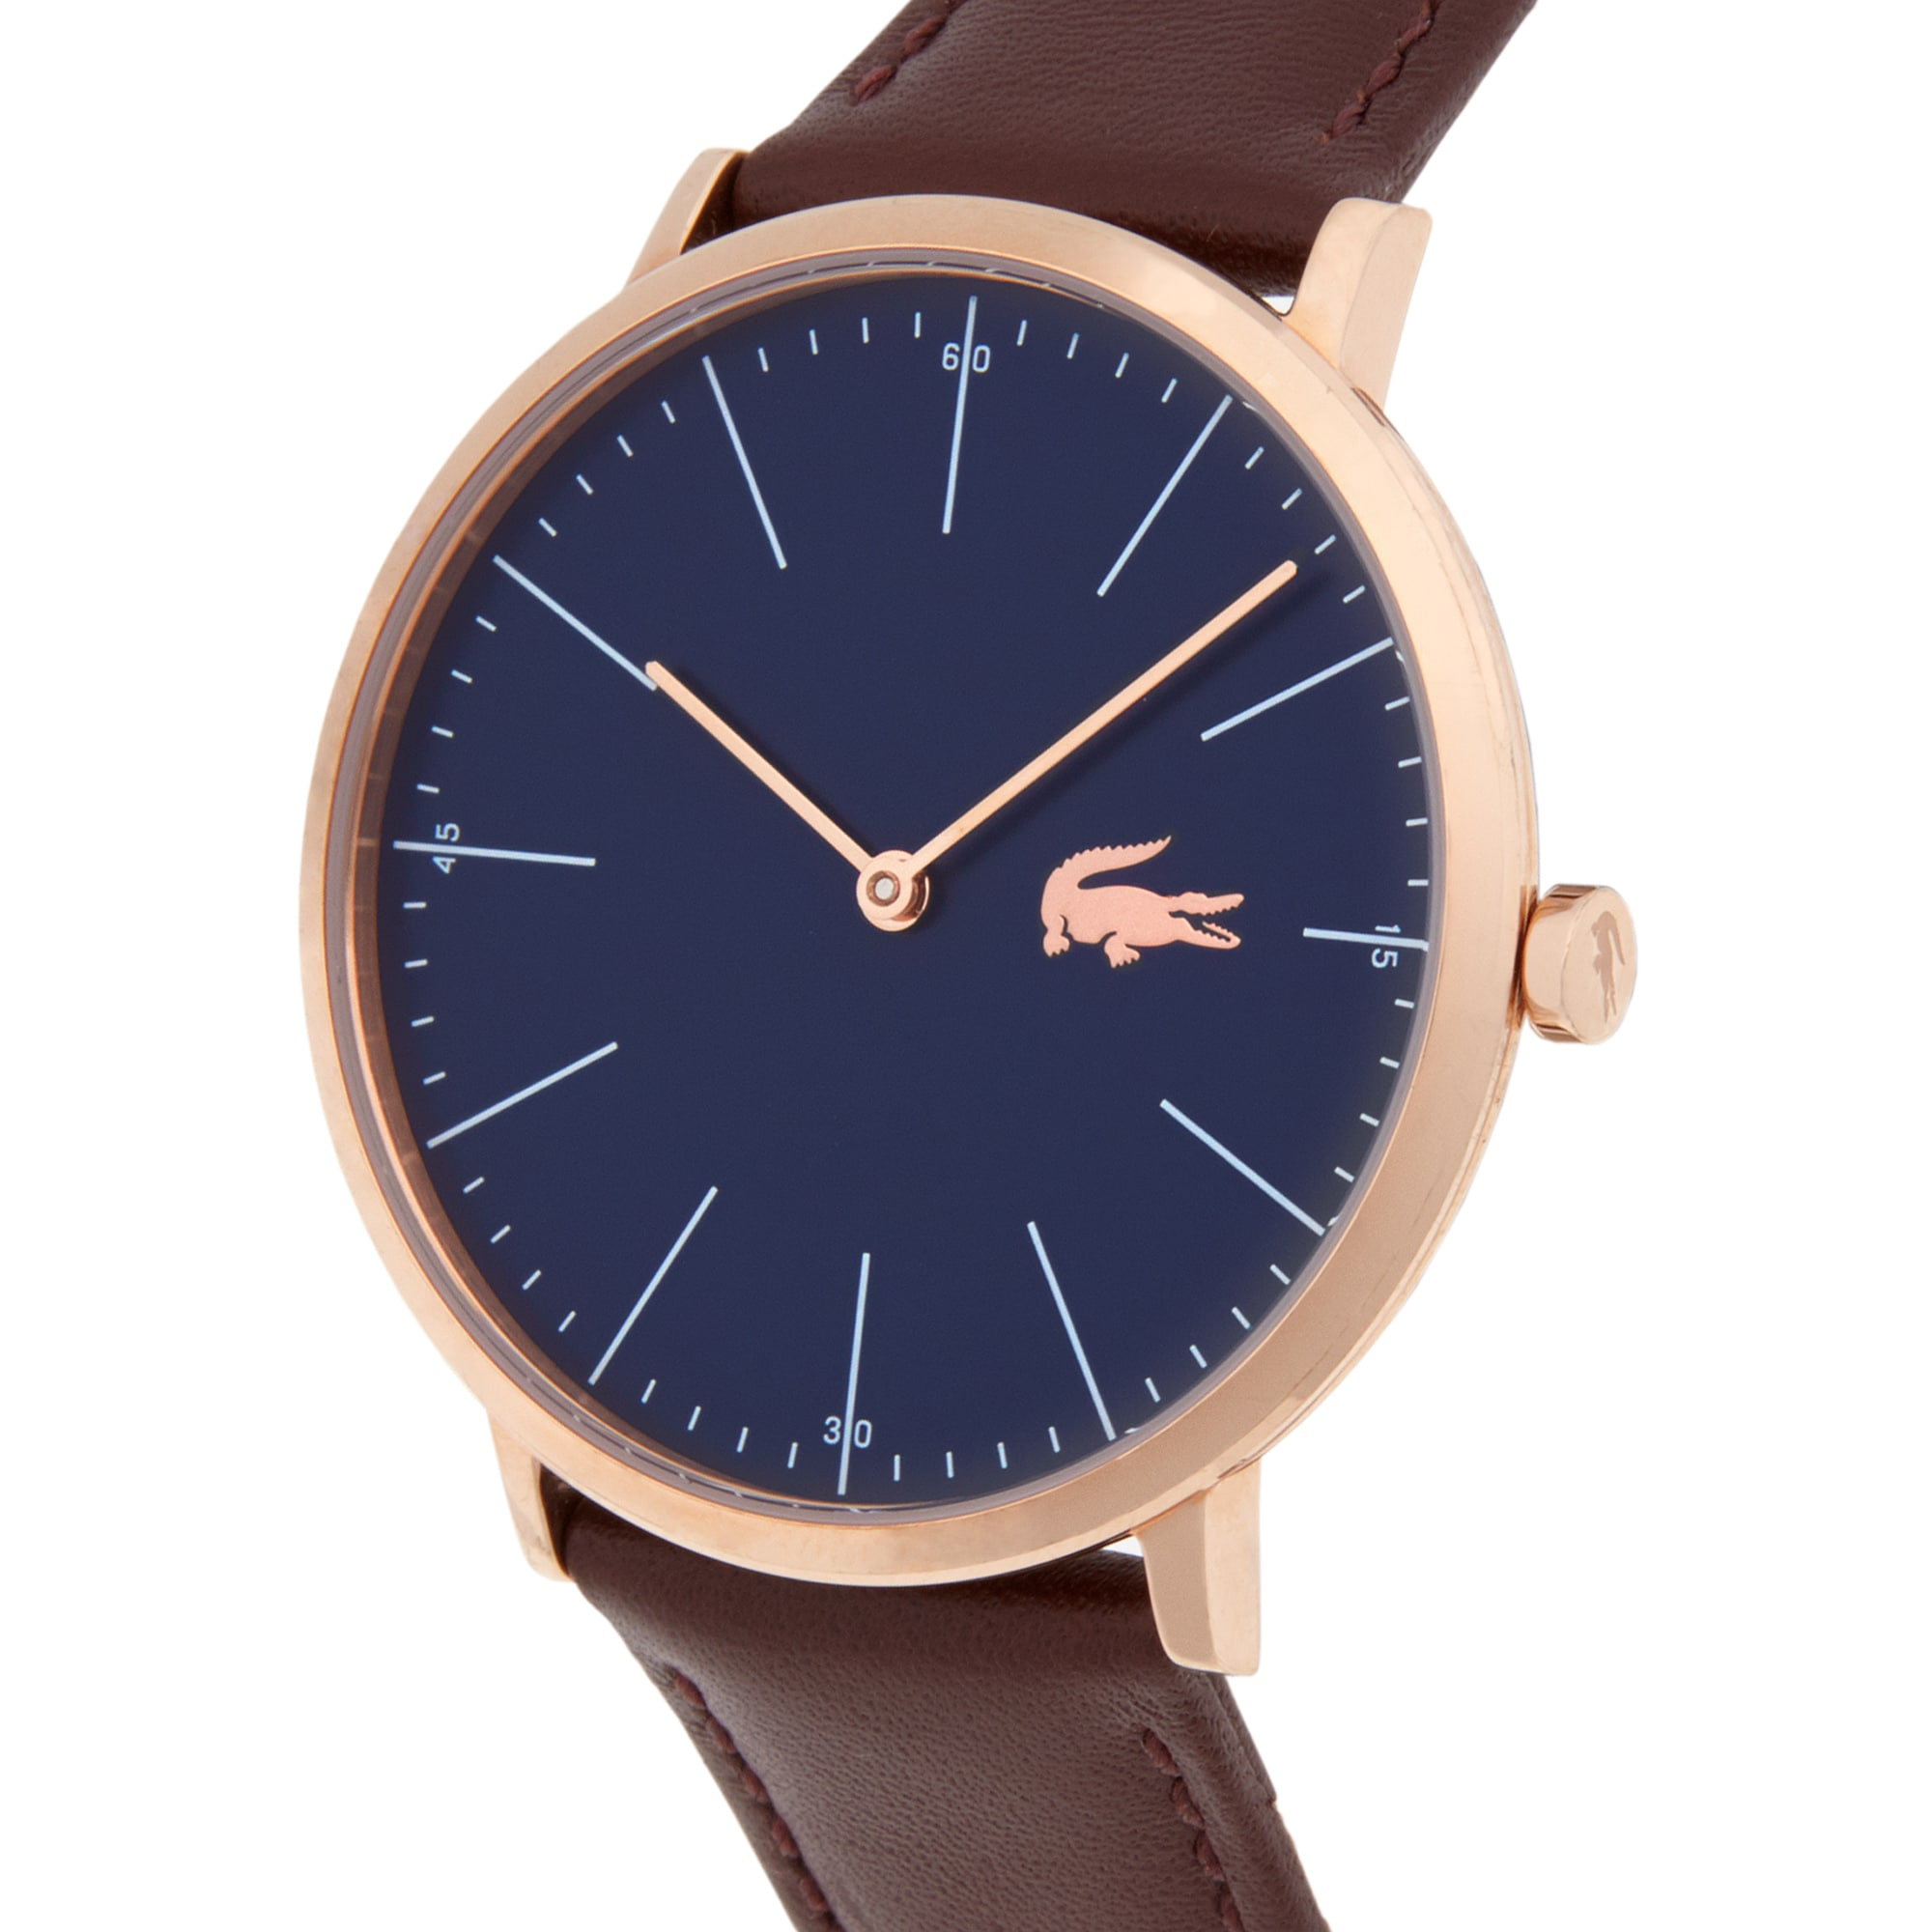 Men's Moon Watch with Brown Leather Strap